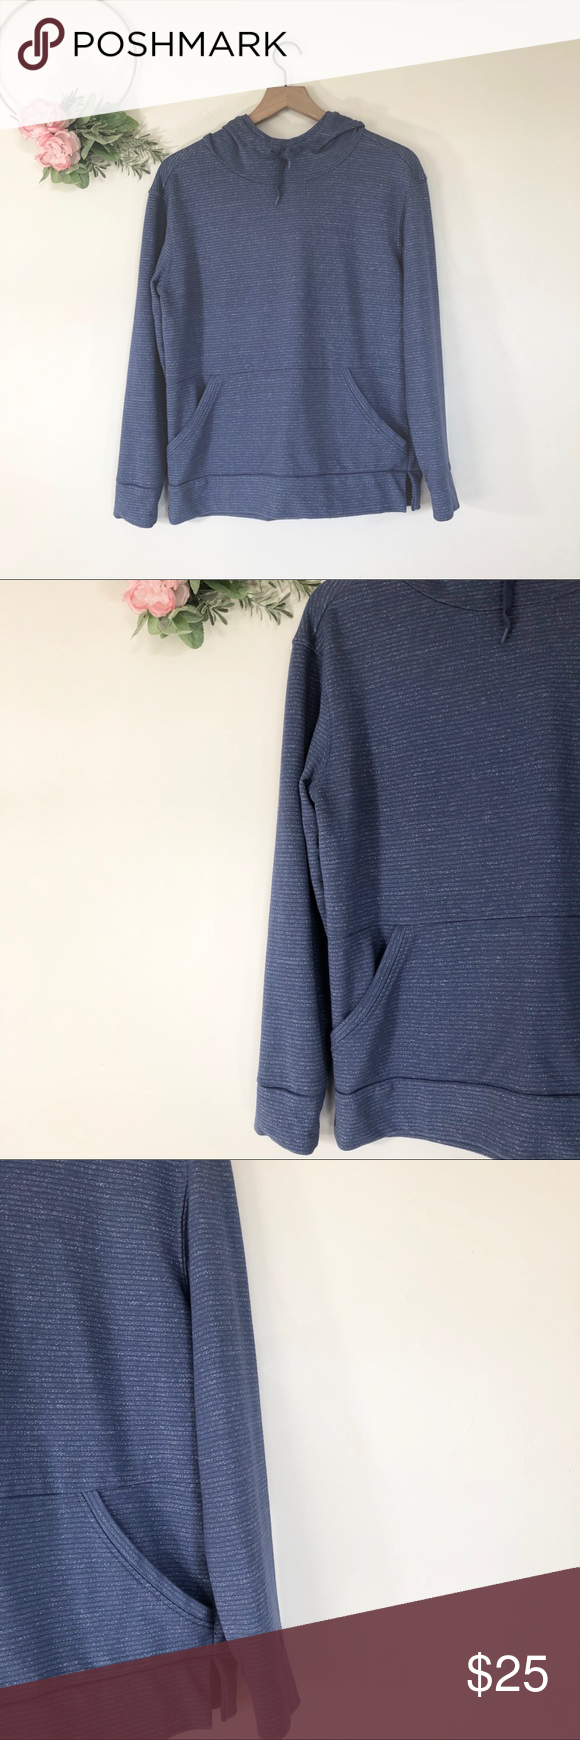 Champion Elite High Neck Striped Hoodie Excellent Condition Size Tag Is Coming Off But Does Not Affect Wear M Striped Hoodie Clothes Design Sweatshirt Tops [ 1740 x 580 Pixel ]